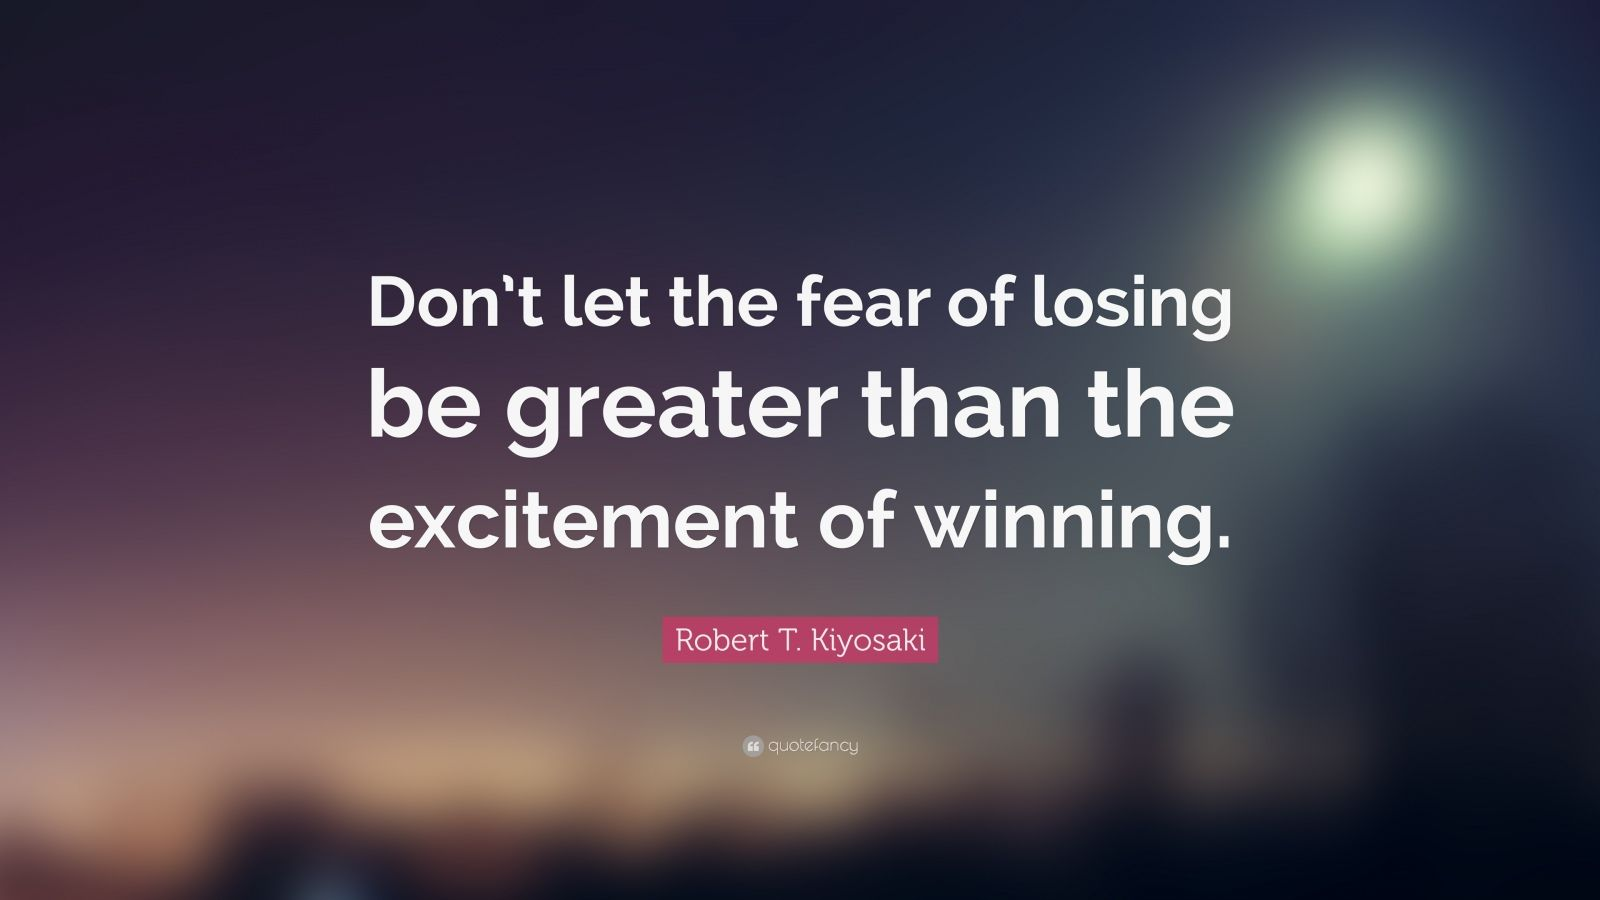 """Robert T. Kiyosaki Quote: """"Don't let the fear of losing be greater than the excitement of winning."""""""